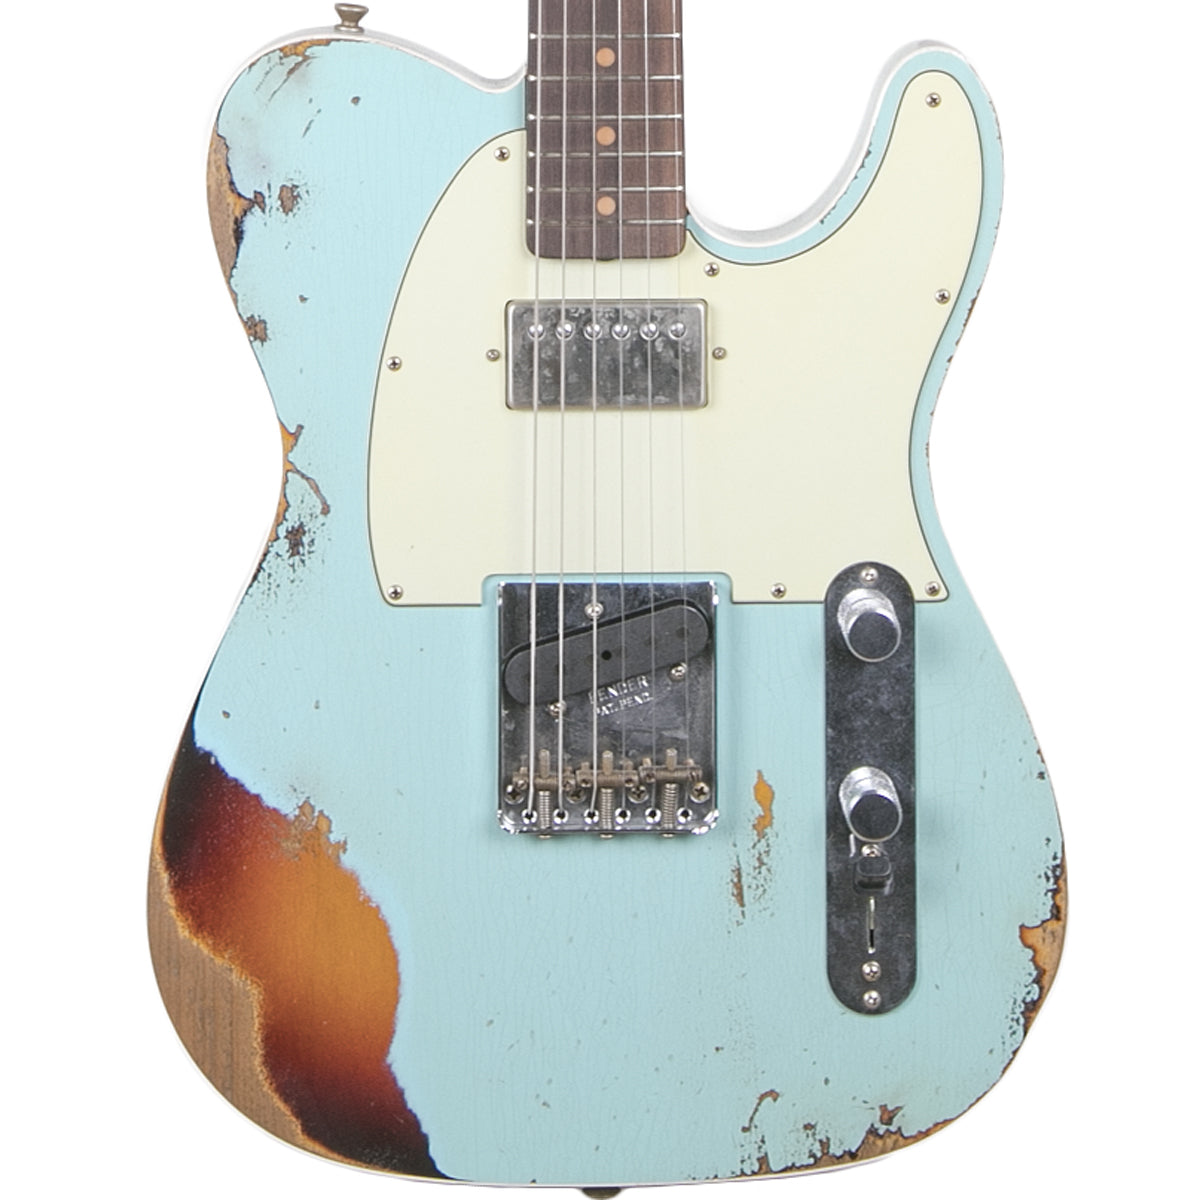 Fender Custom Shop 2018 Heavy Relic Reverse Custom HS Tele Aged Daphne Blue Over 3 Color Sunburst